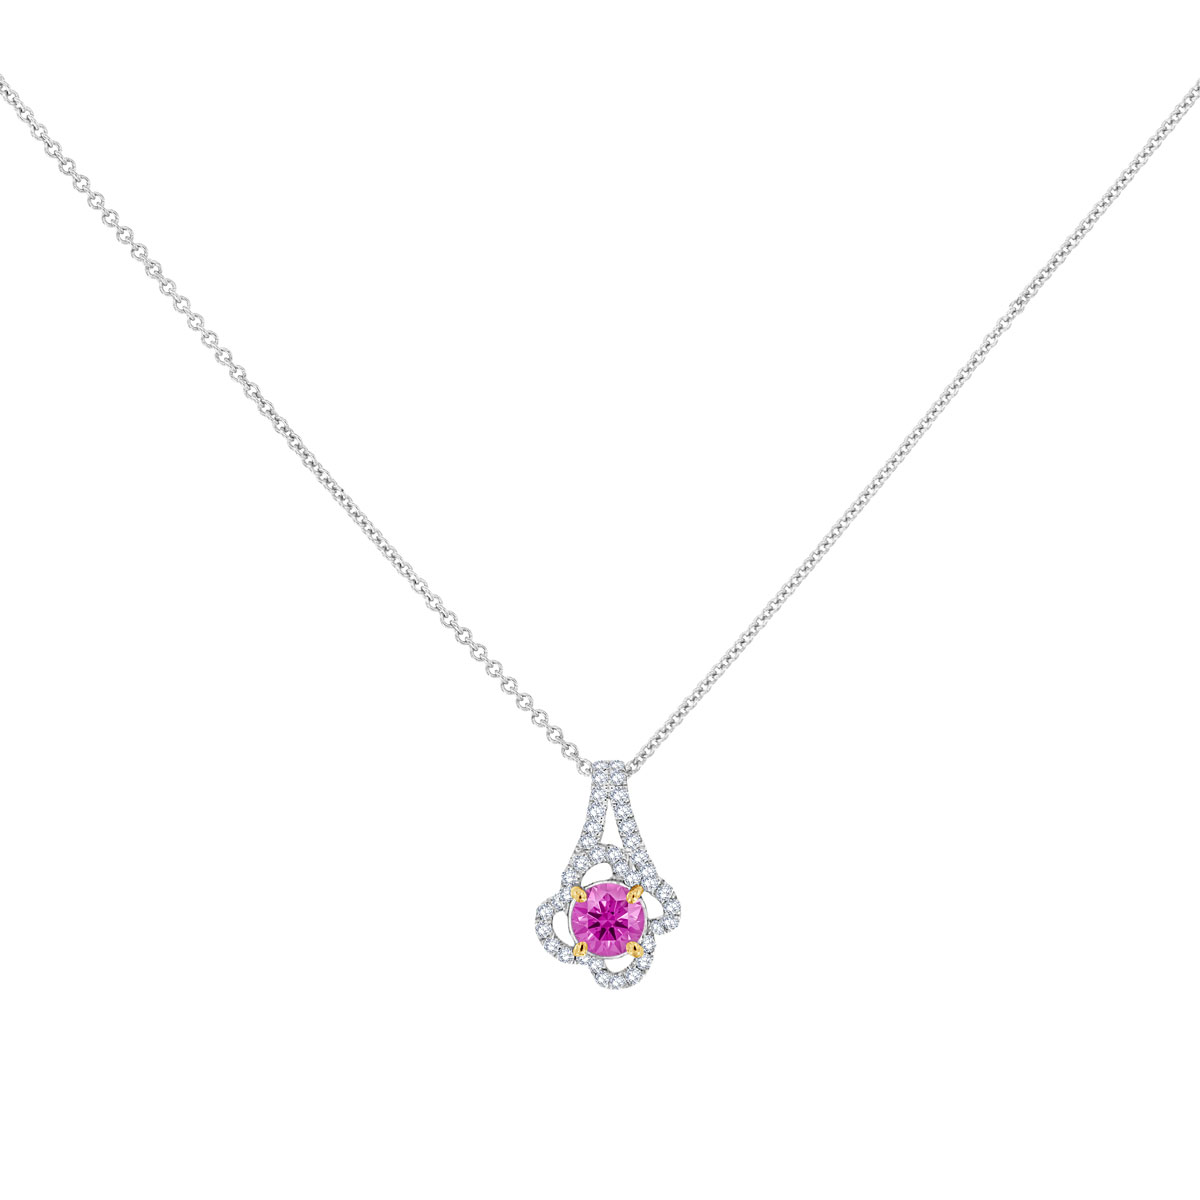 18K White Gold Pink Sapphire & Diamonds Pendant (1/2 ct. tw)